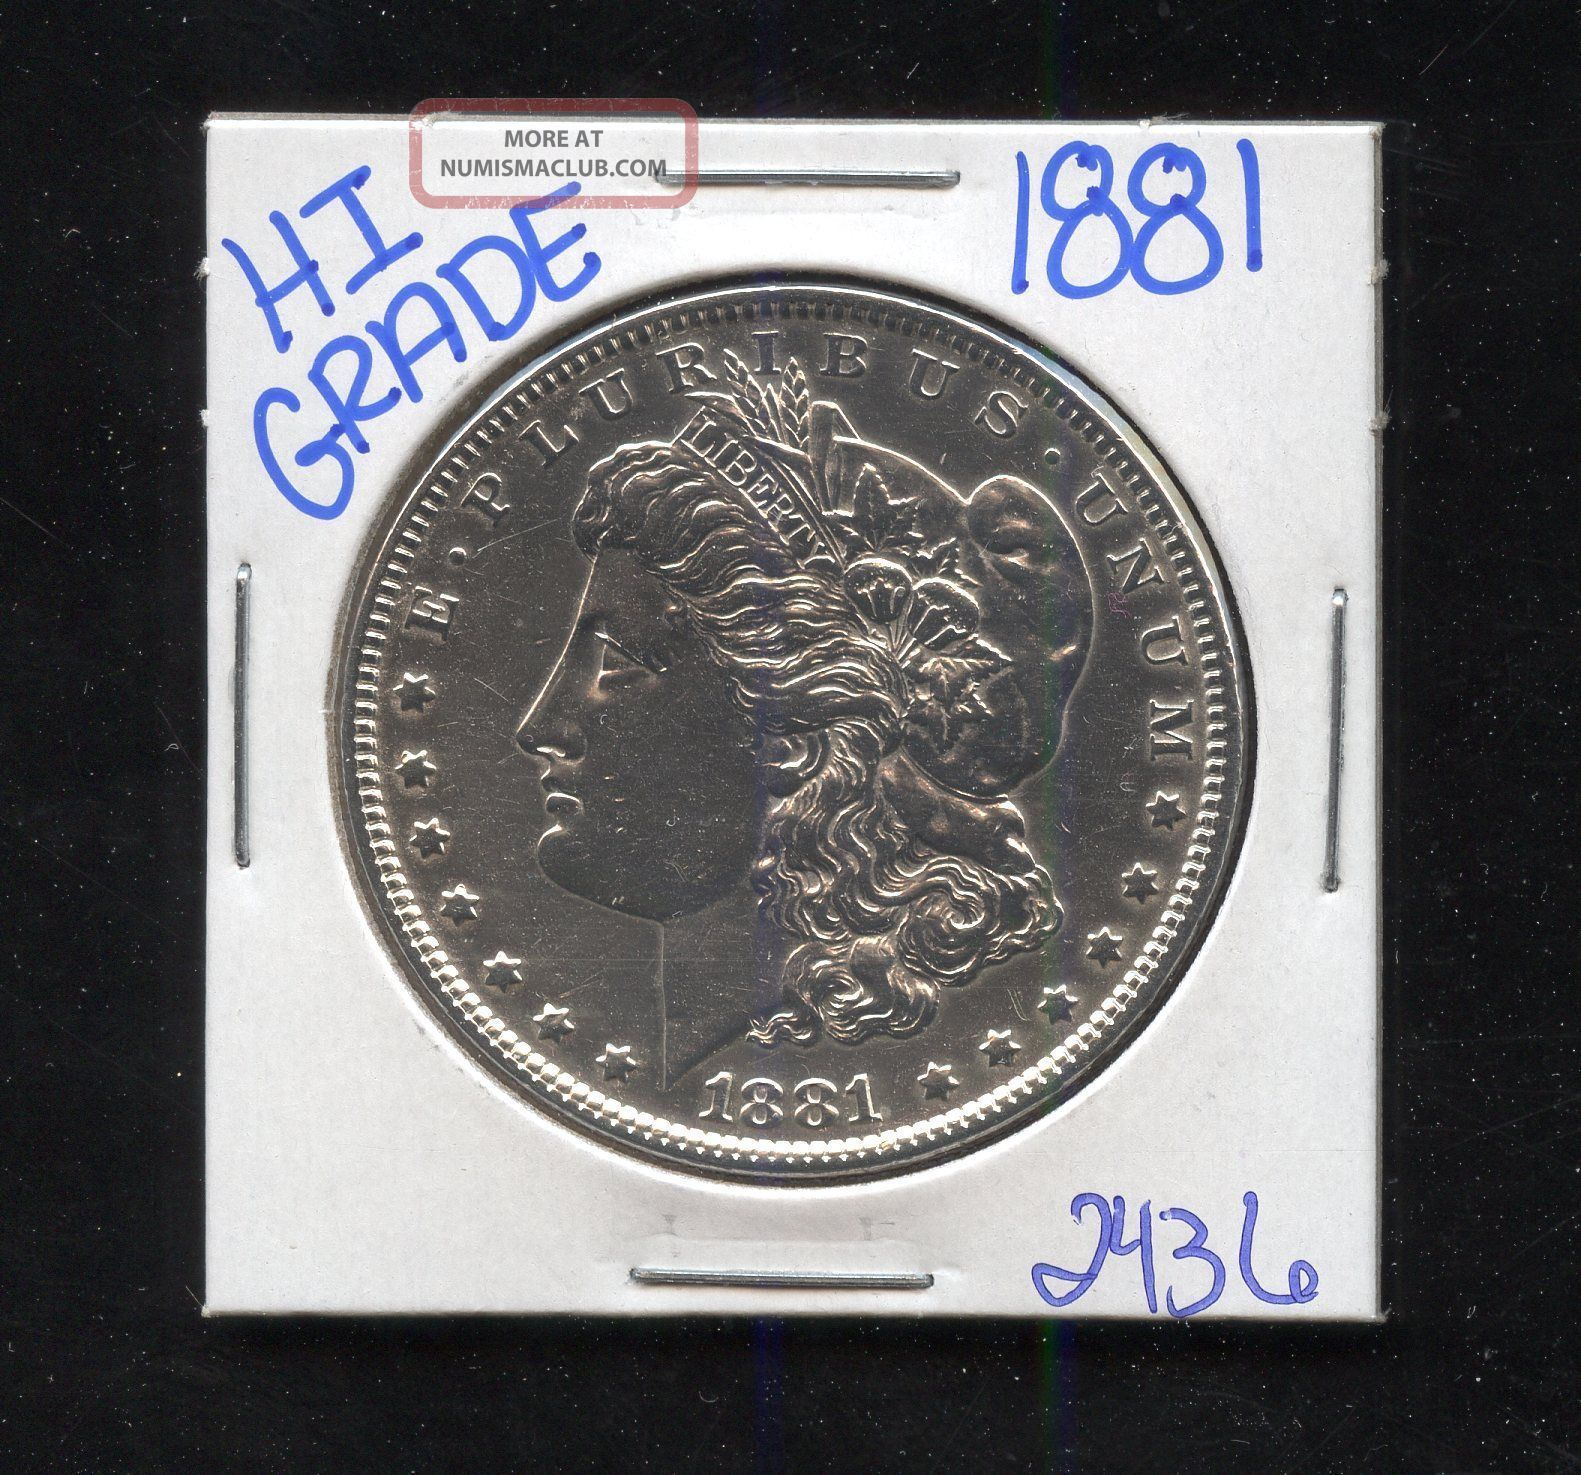 1881 Silver Morgan Dollar Coin 2436 Shipping/rare Estate/high Grade Dollars photo